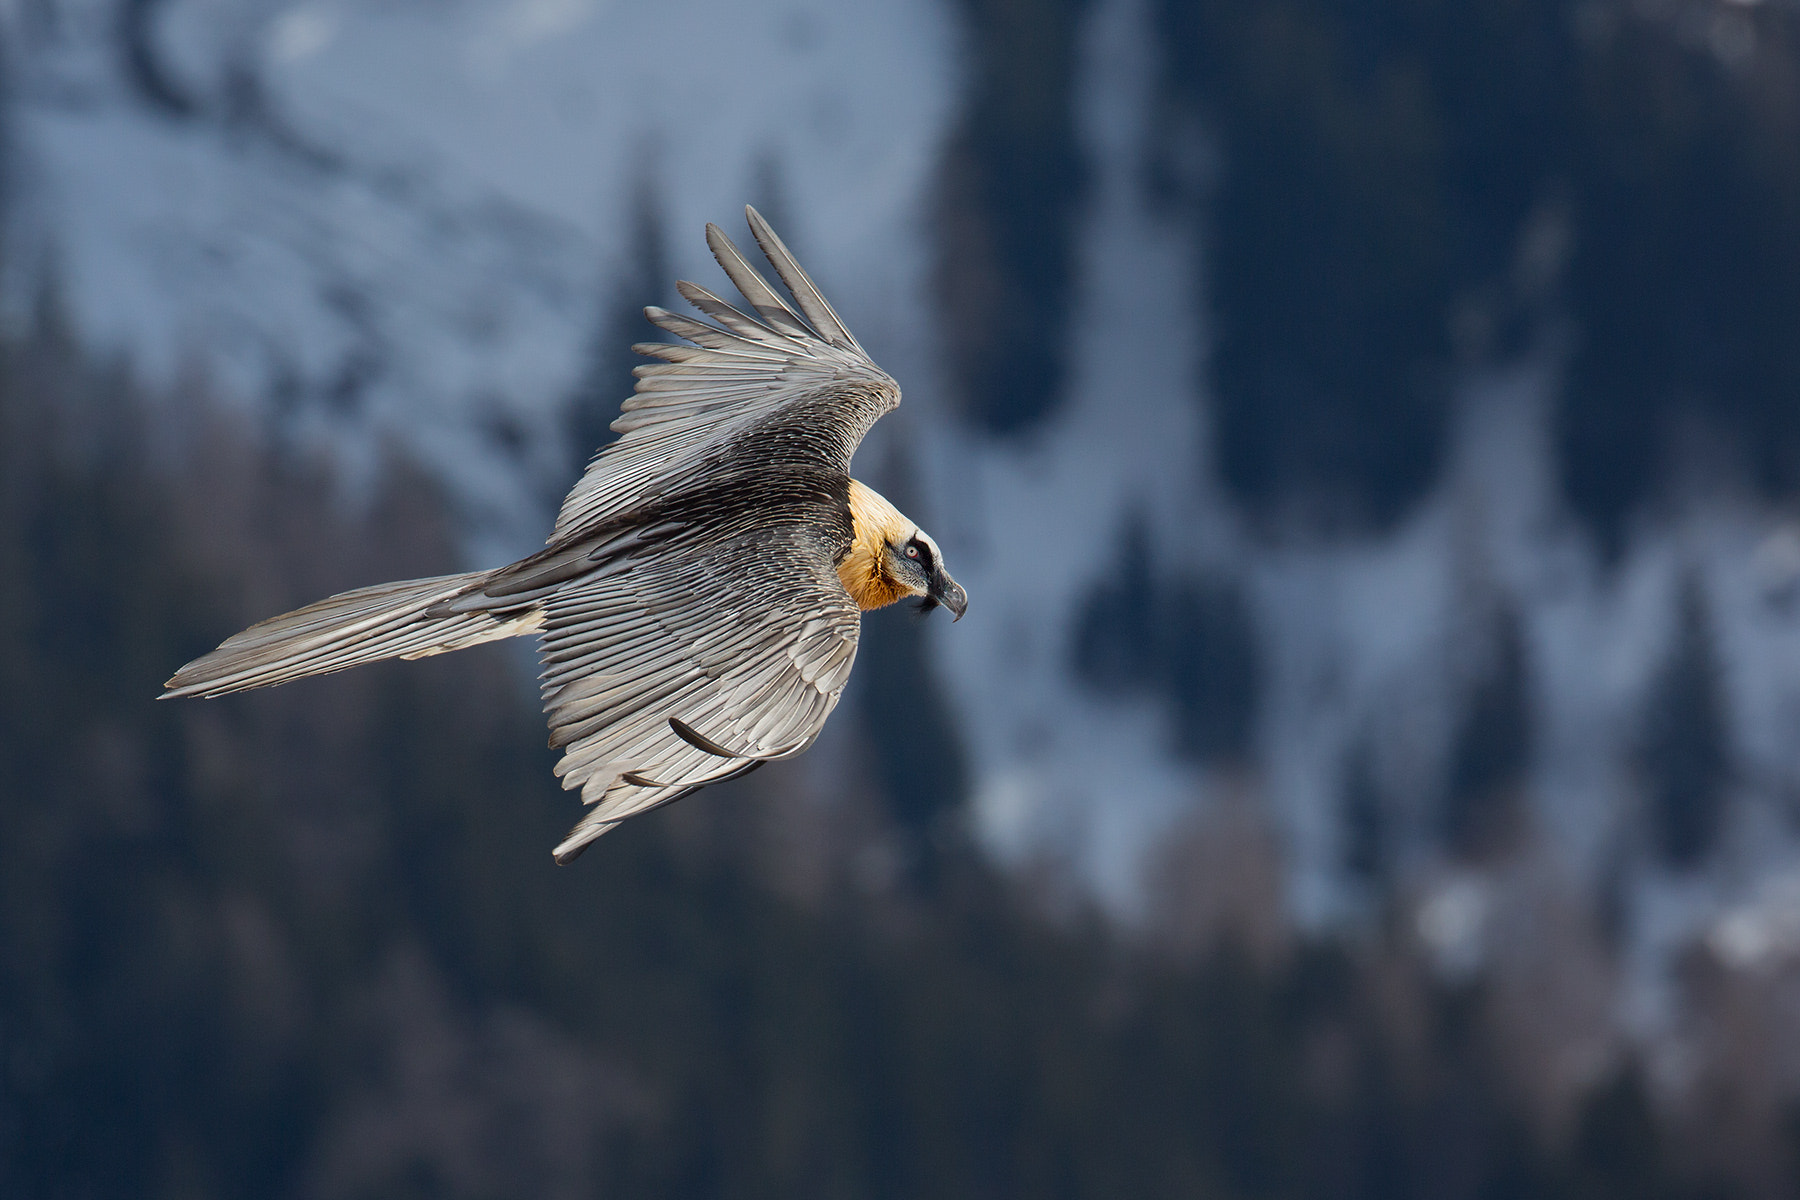 Photograph Bearded Vulture by Daniel Pettersson on 500px